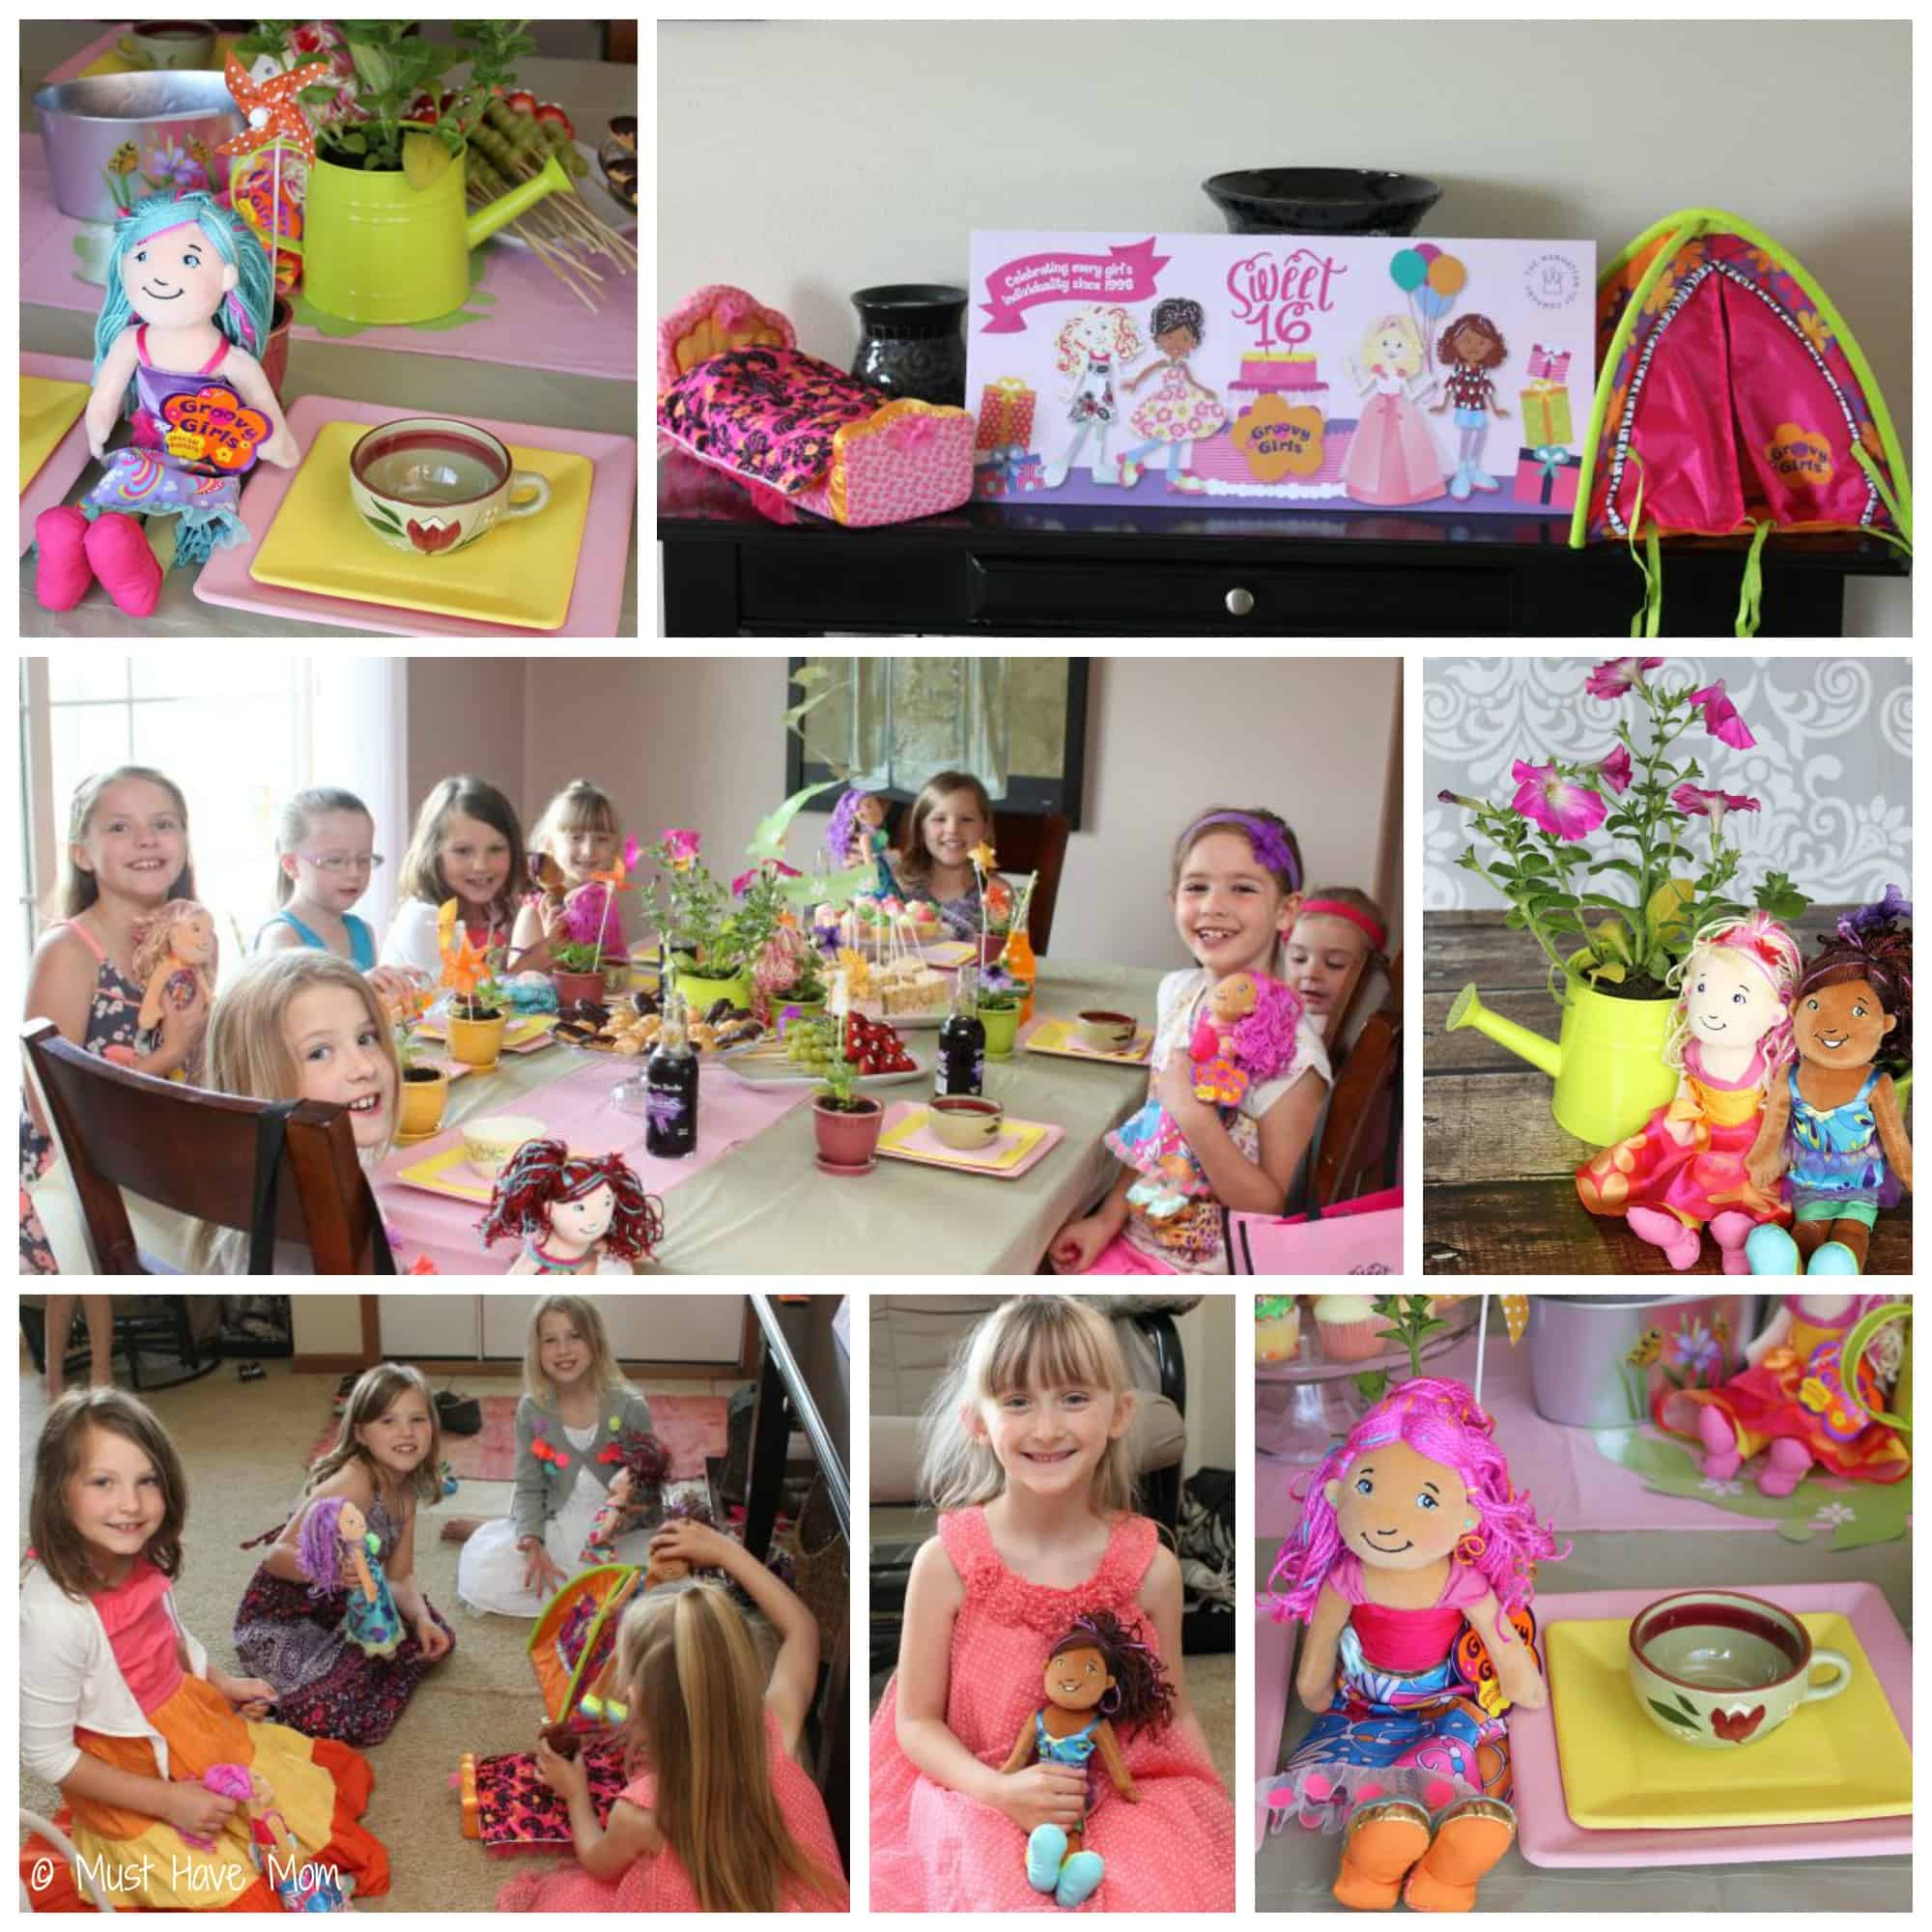 Dolly Garden Party Ideas - Must Have Mom